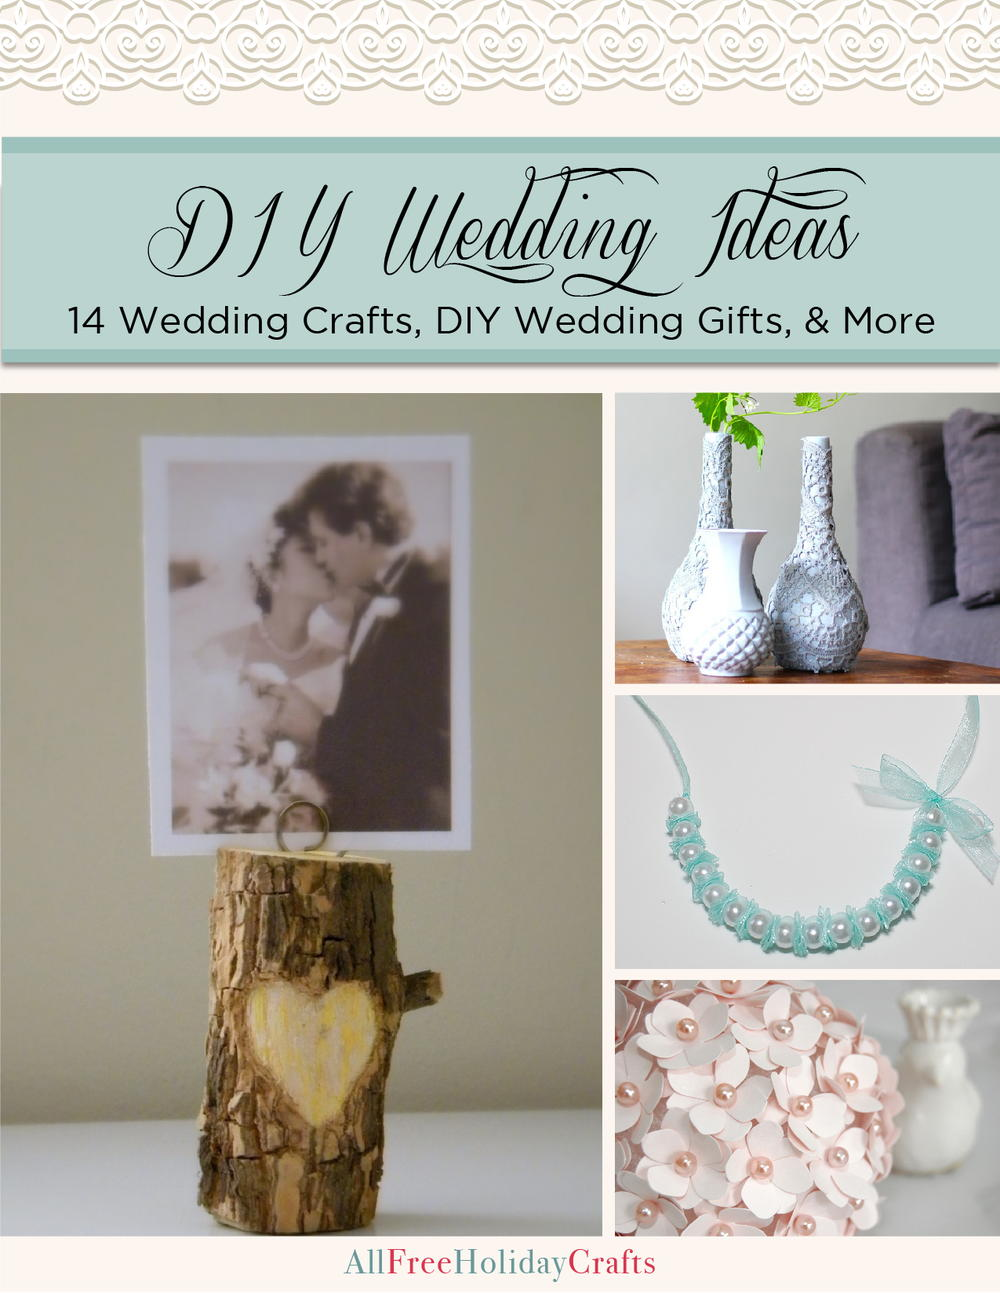 DIY Wedding Ideas: 14 Wedding Crafts, DIY Wedding Gifts, and More ...